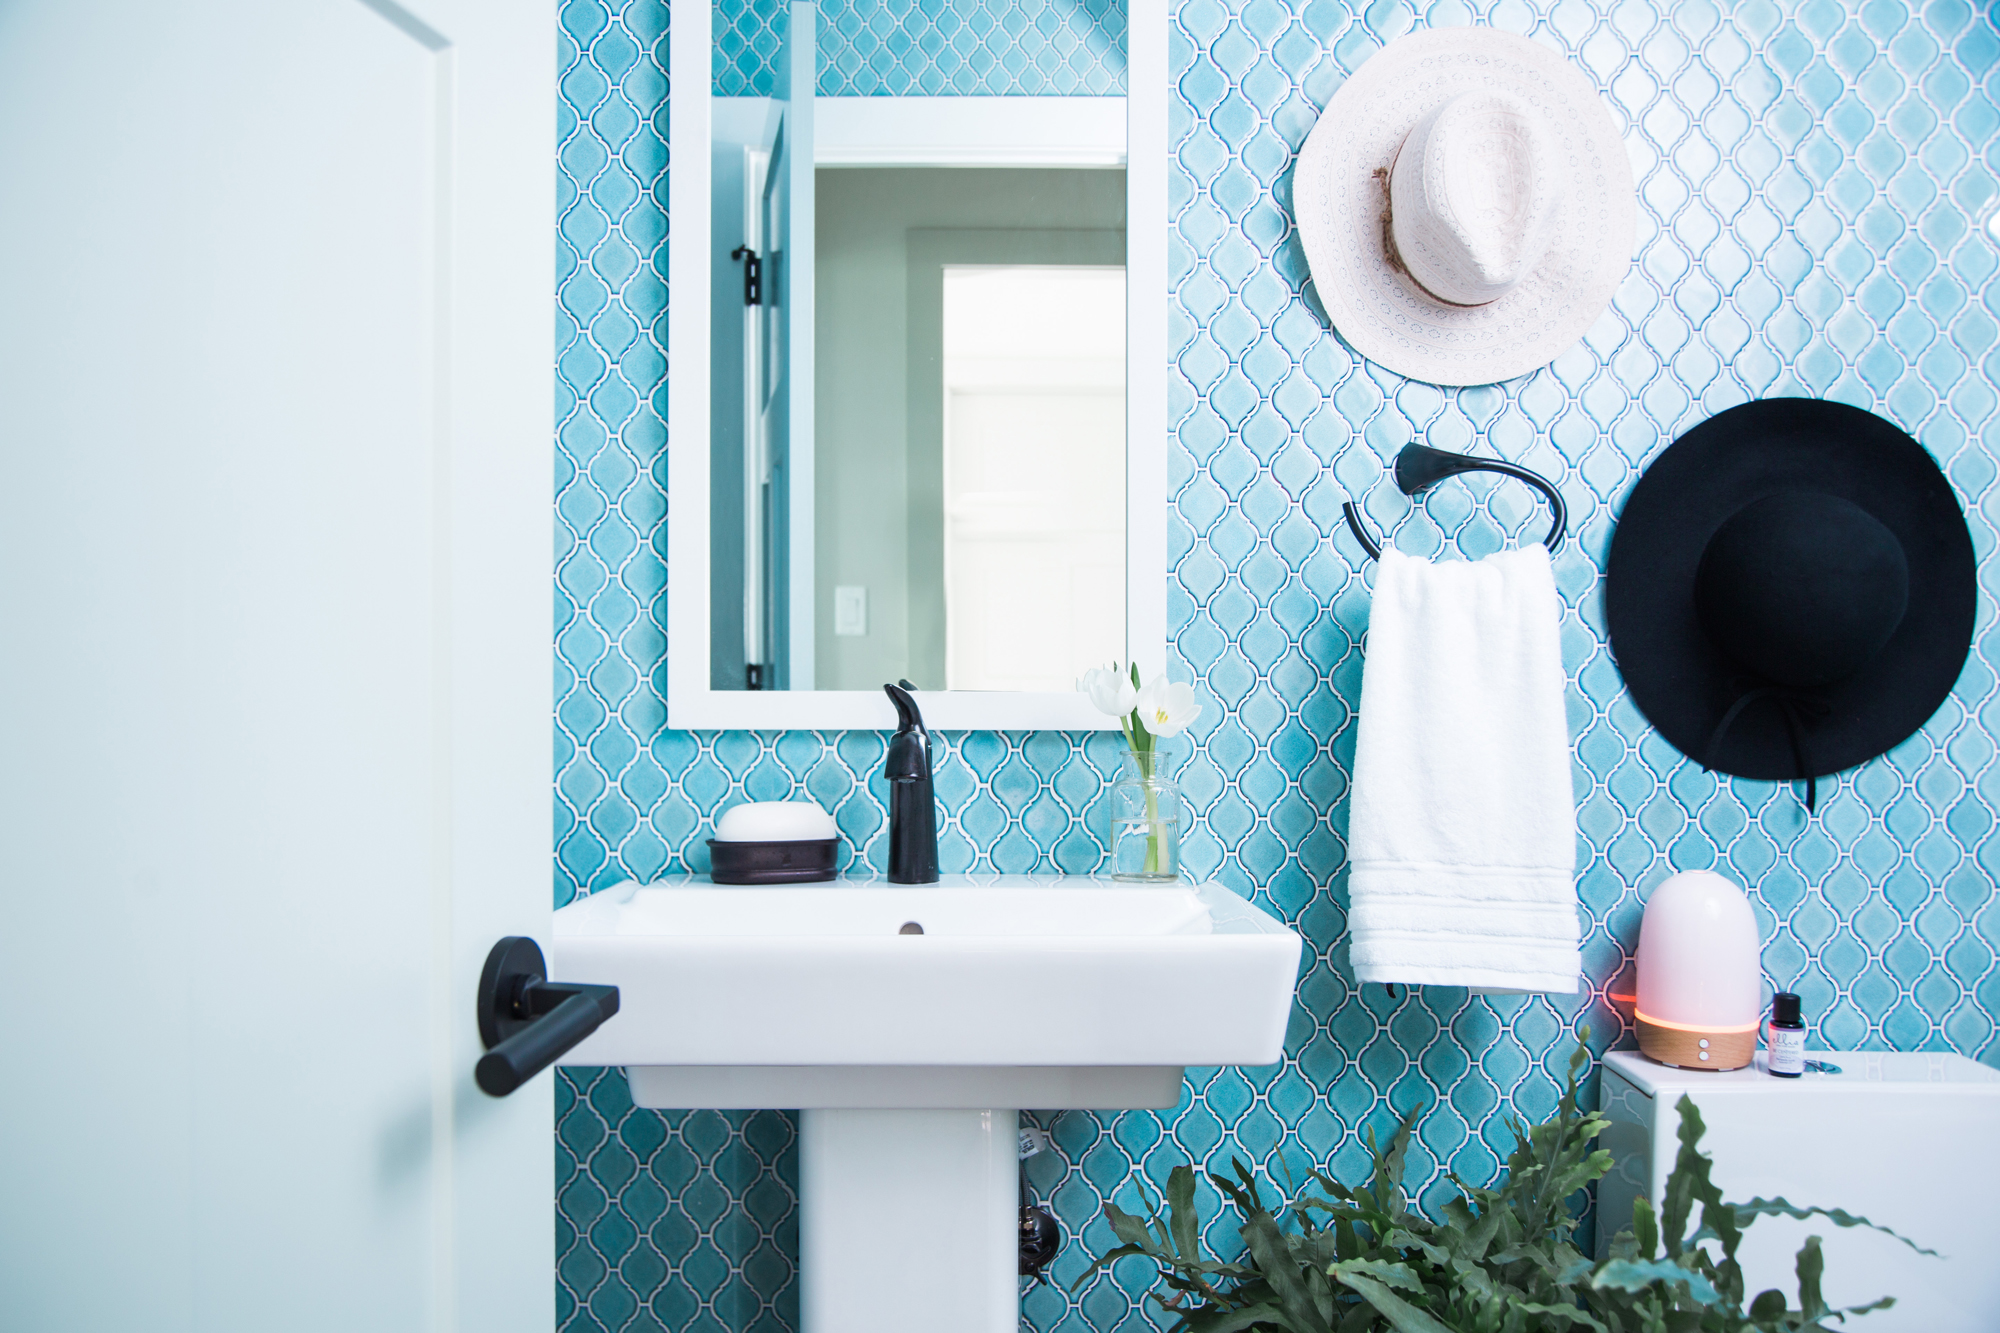 Alteo® faucet    Rêve® pedestal sink    Rêve toilet     Decorative quatrefoil tile contrasts with the simple geometric lines of the modern sink and toilet, together creating a cheerful powder room that mixes vintage and contemporary styles.